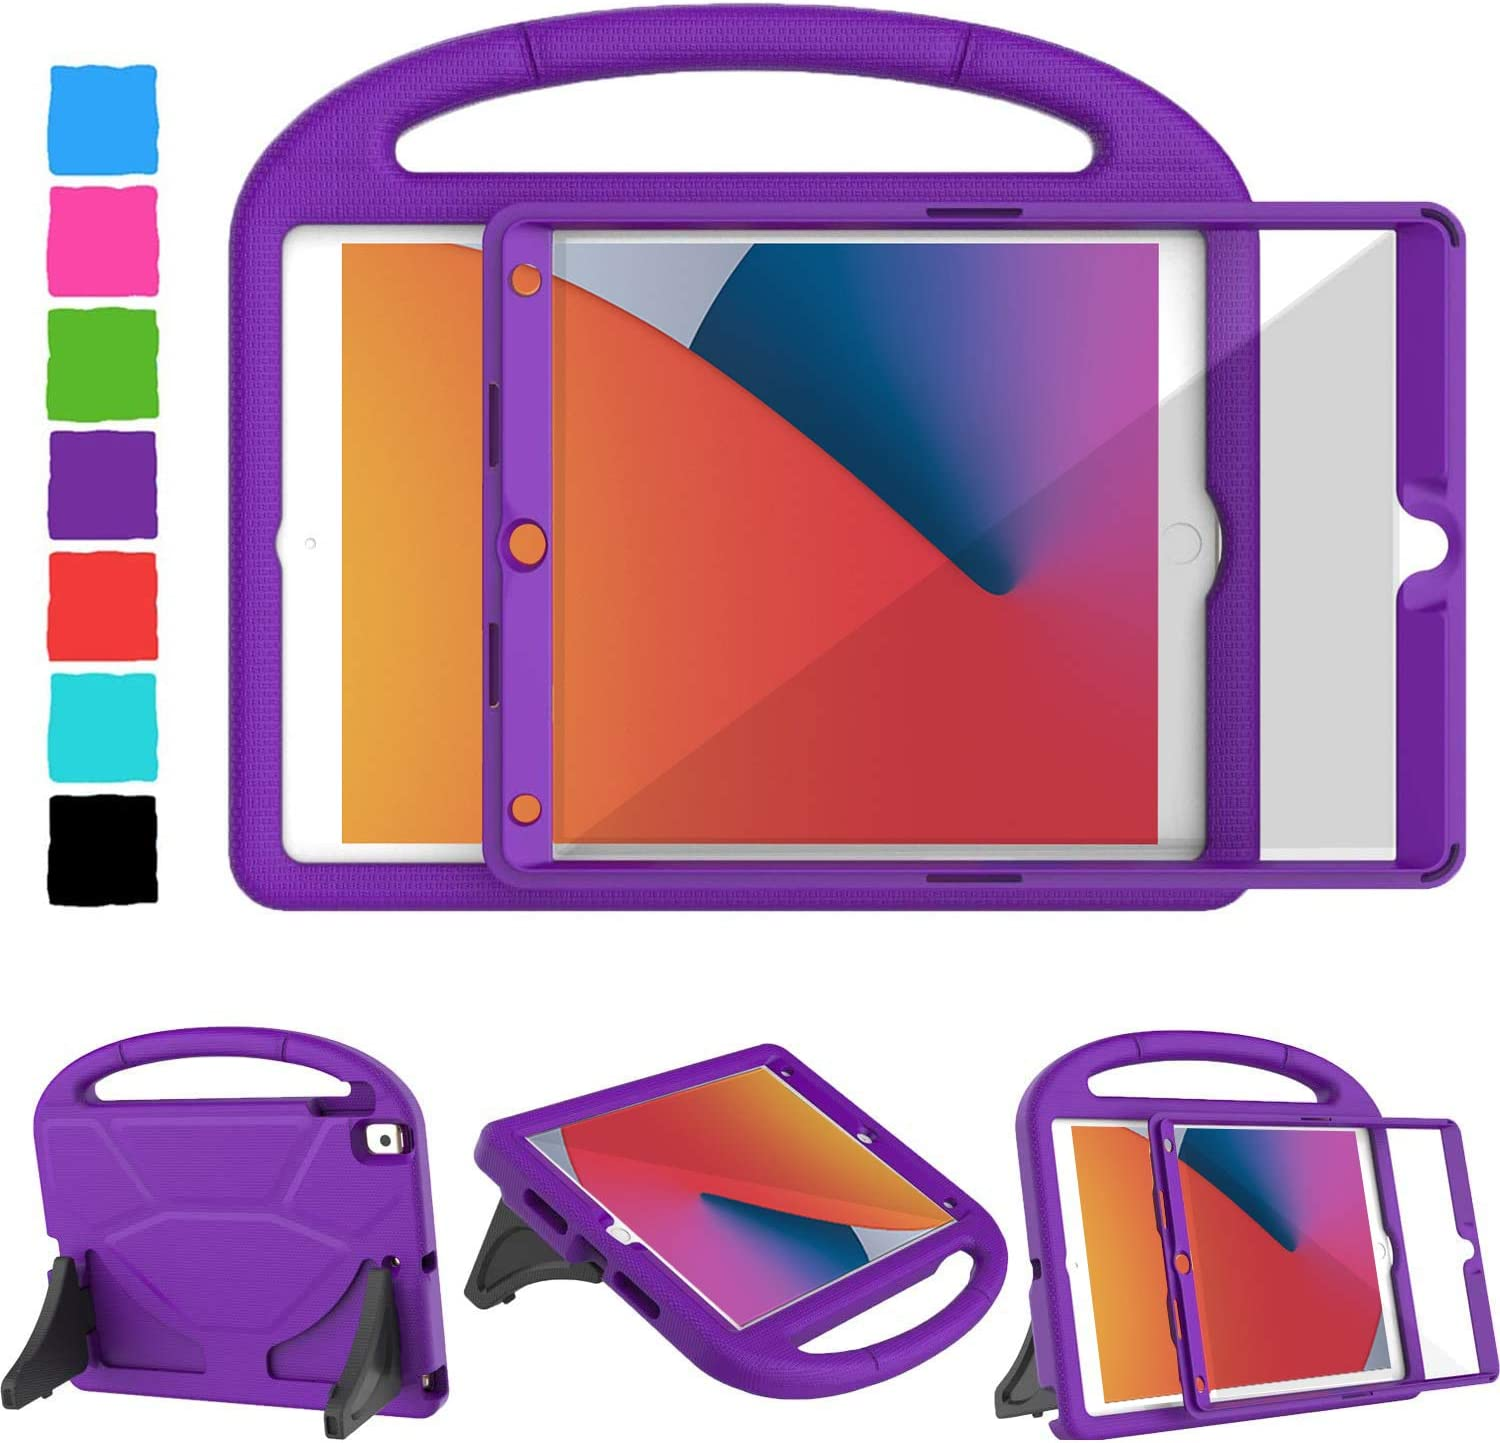 TIRIN Kids Max 82% OFF Case for iPad 8th Generation 10.2 New 7th Popular overseas 2020